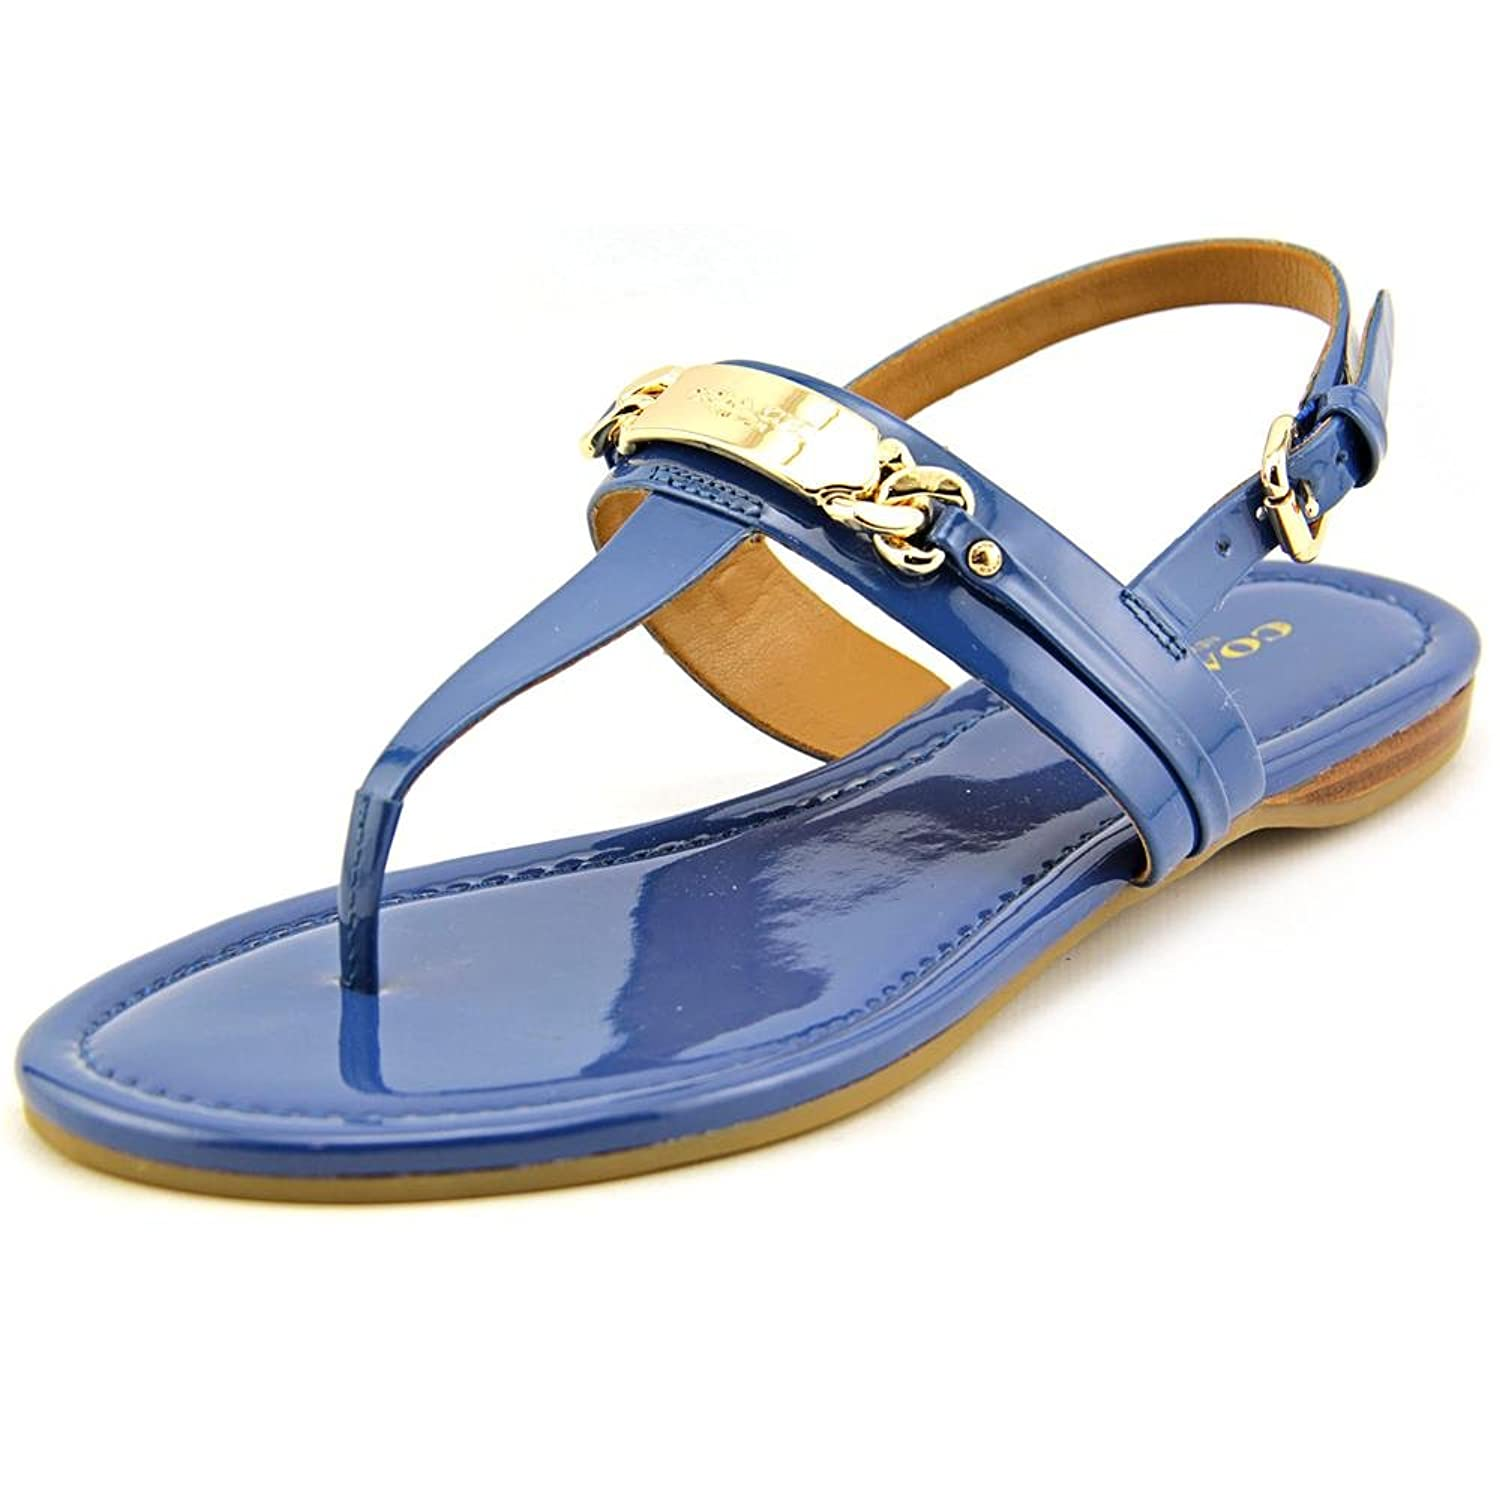 Coach Women's Caterine Patent Leather Sandal